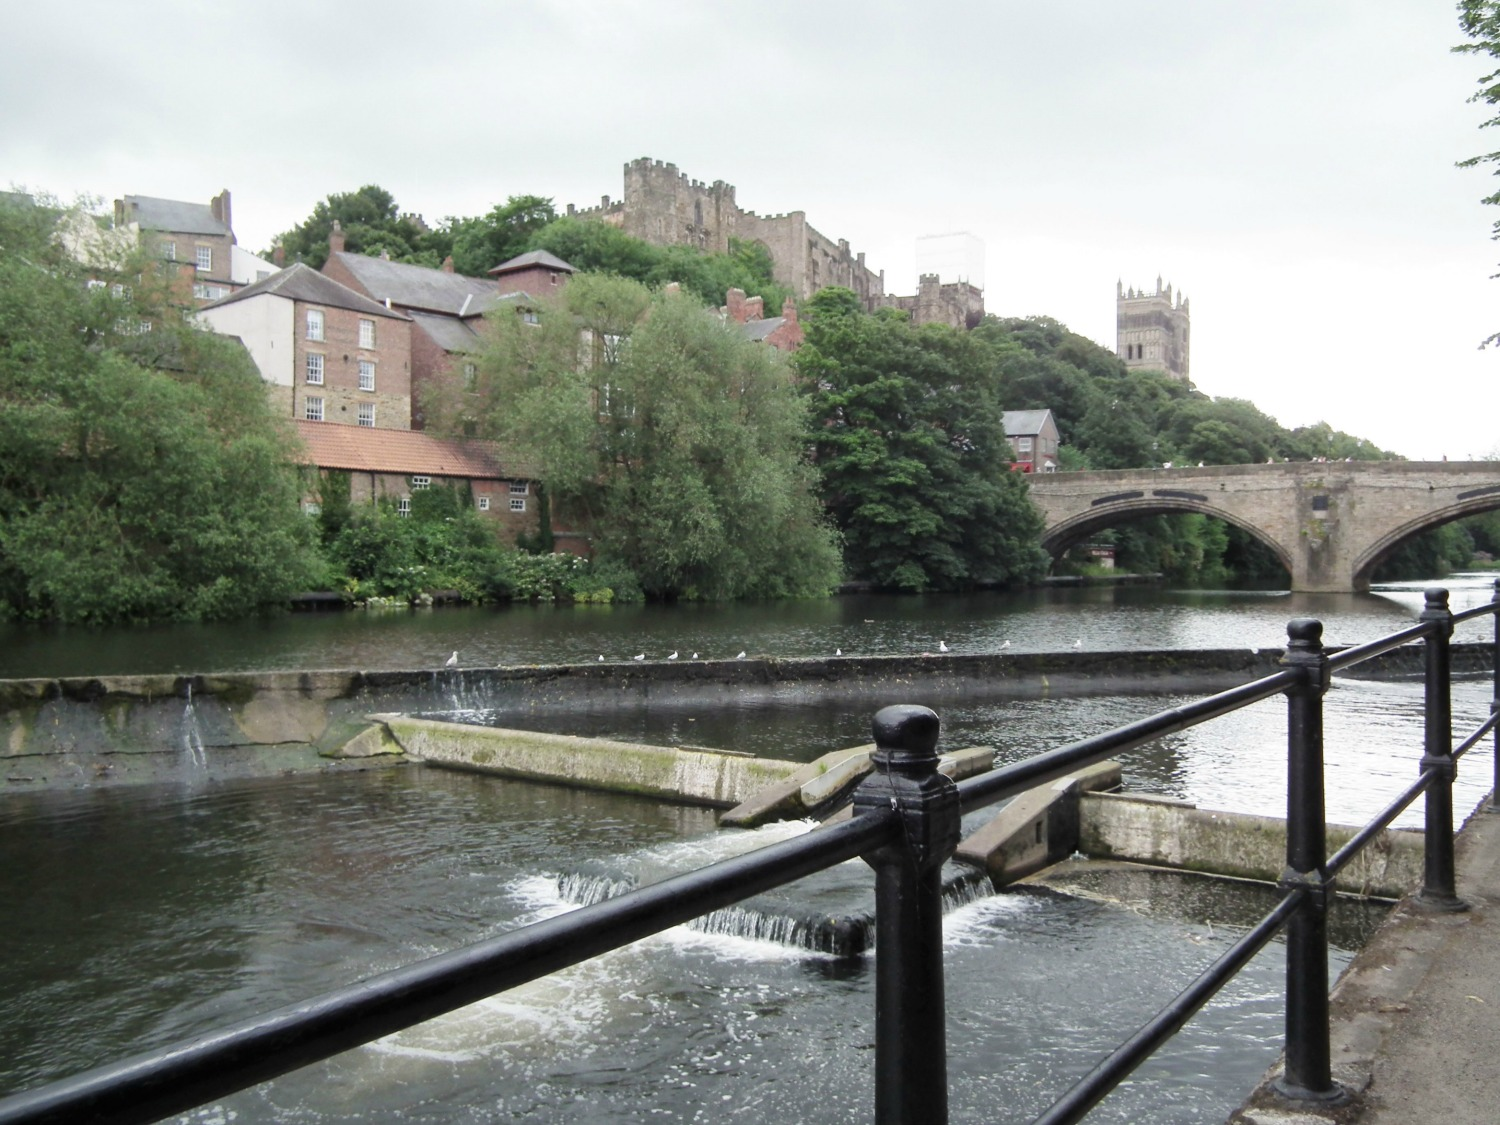 River Wear, Durham